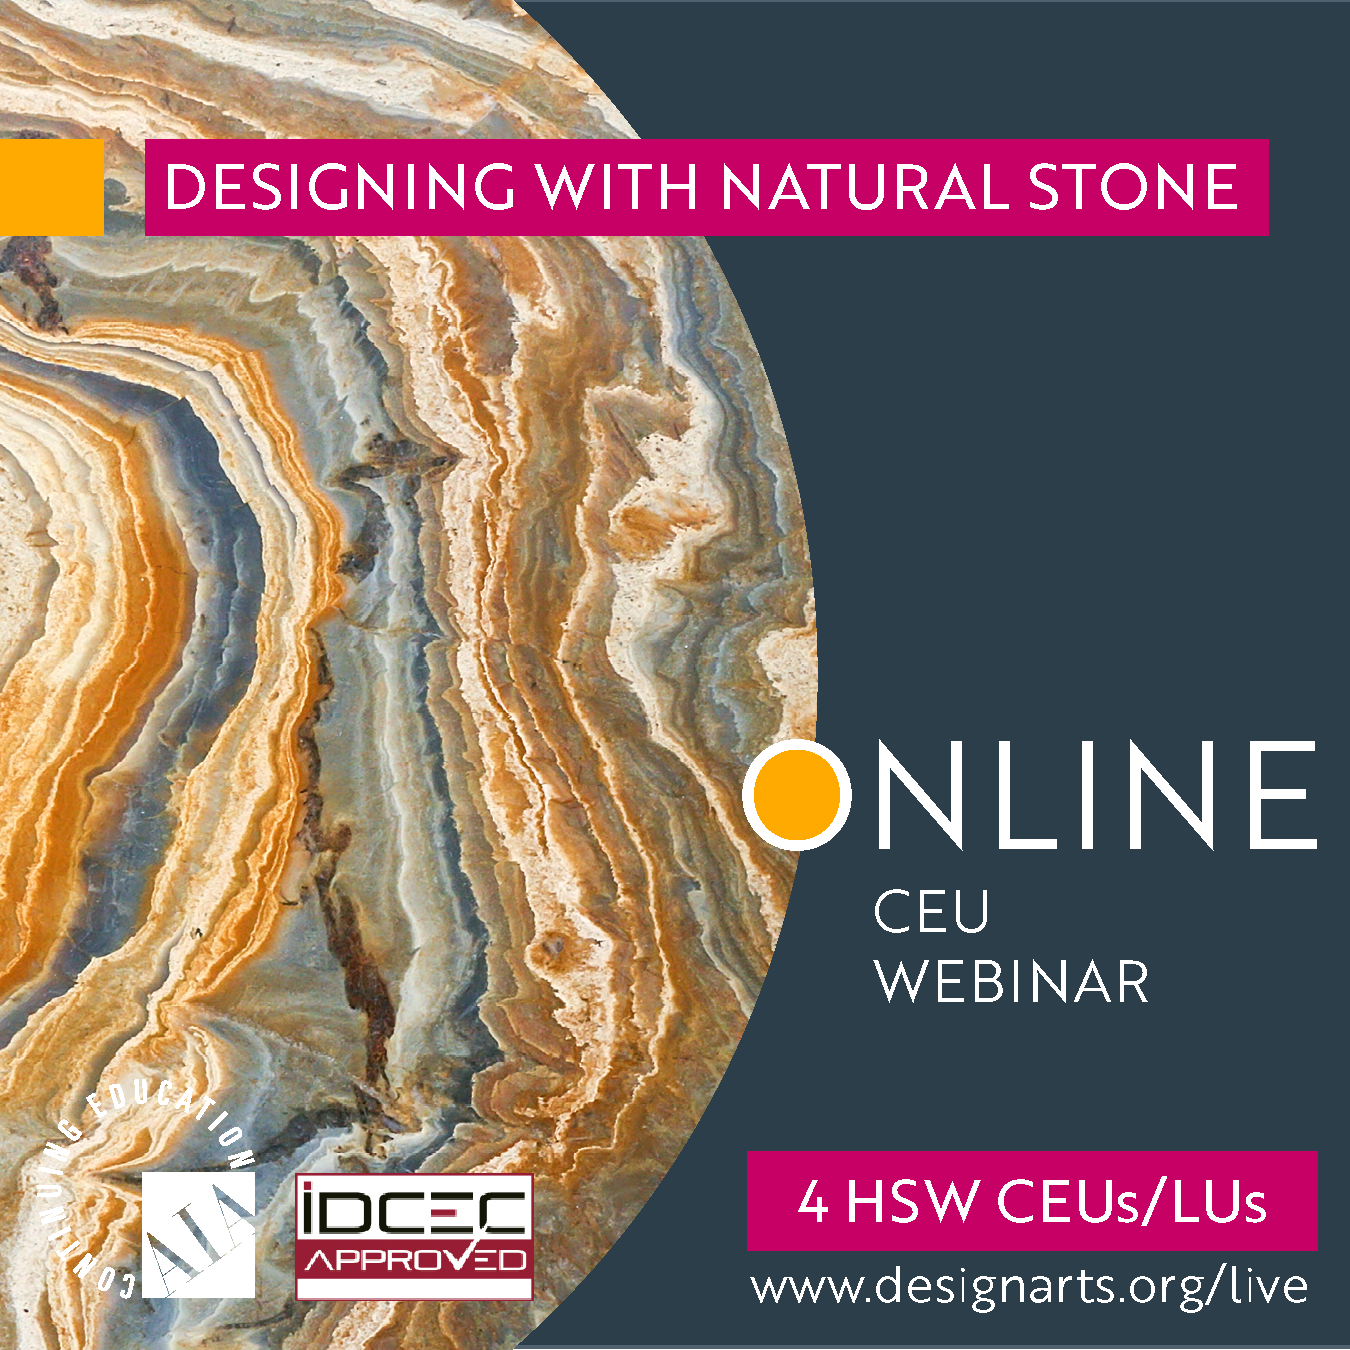 CEU: DESIGNING WITH NATURAL STONE